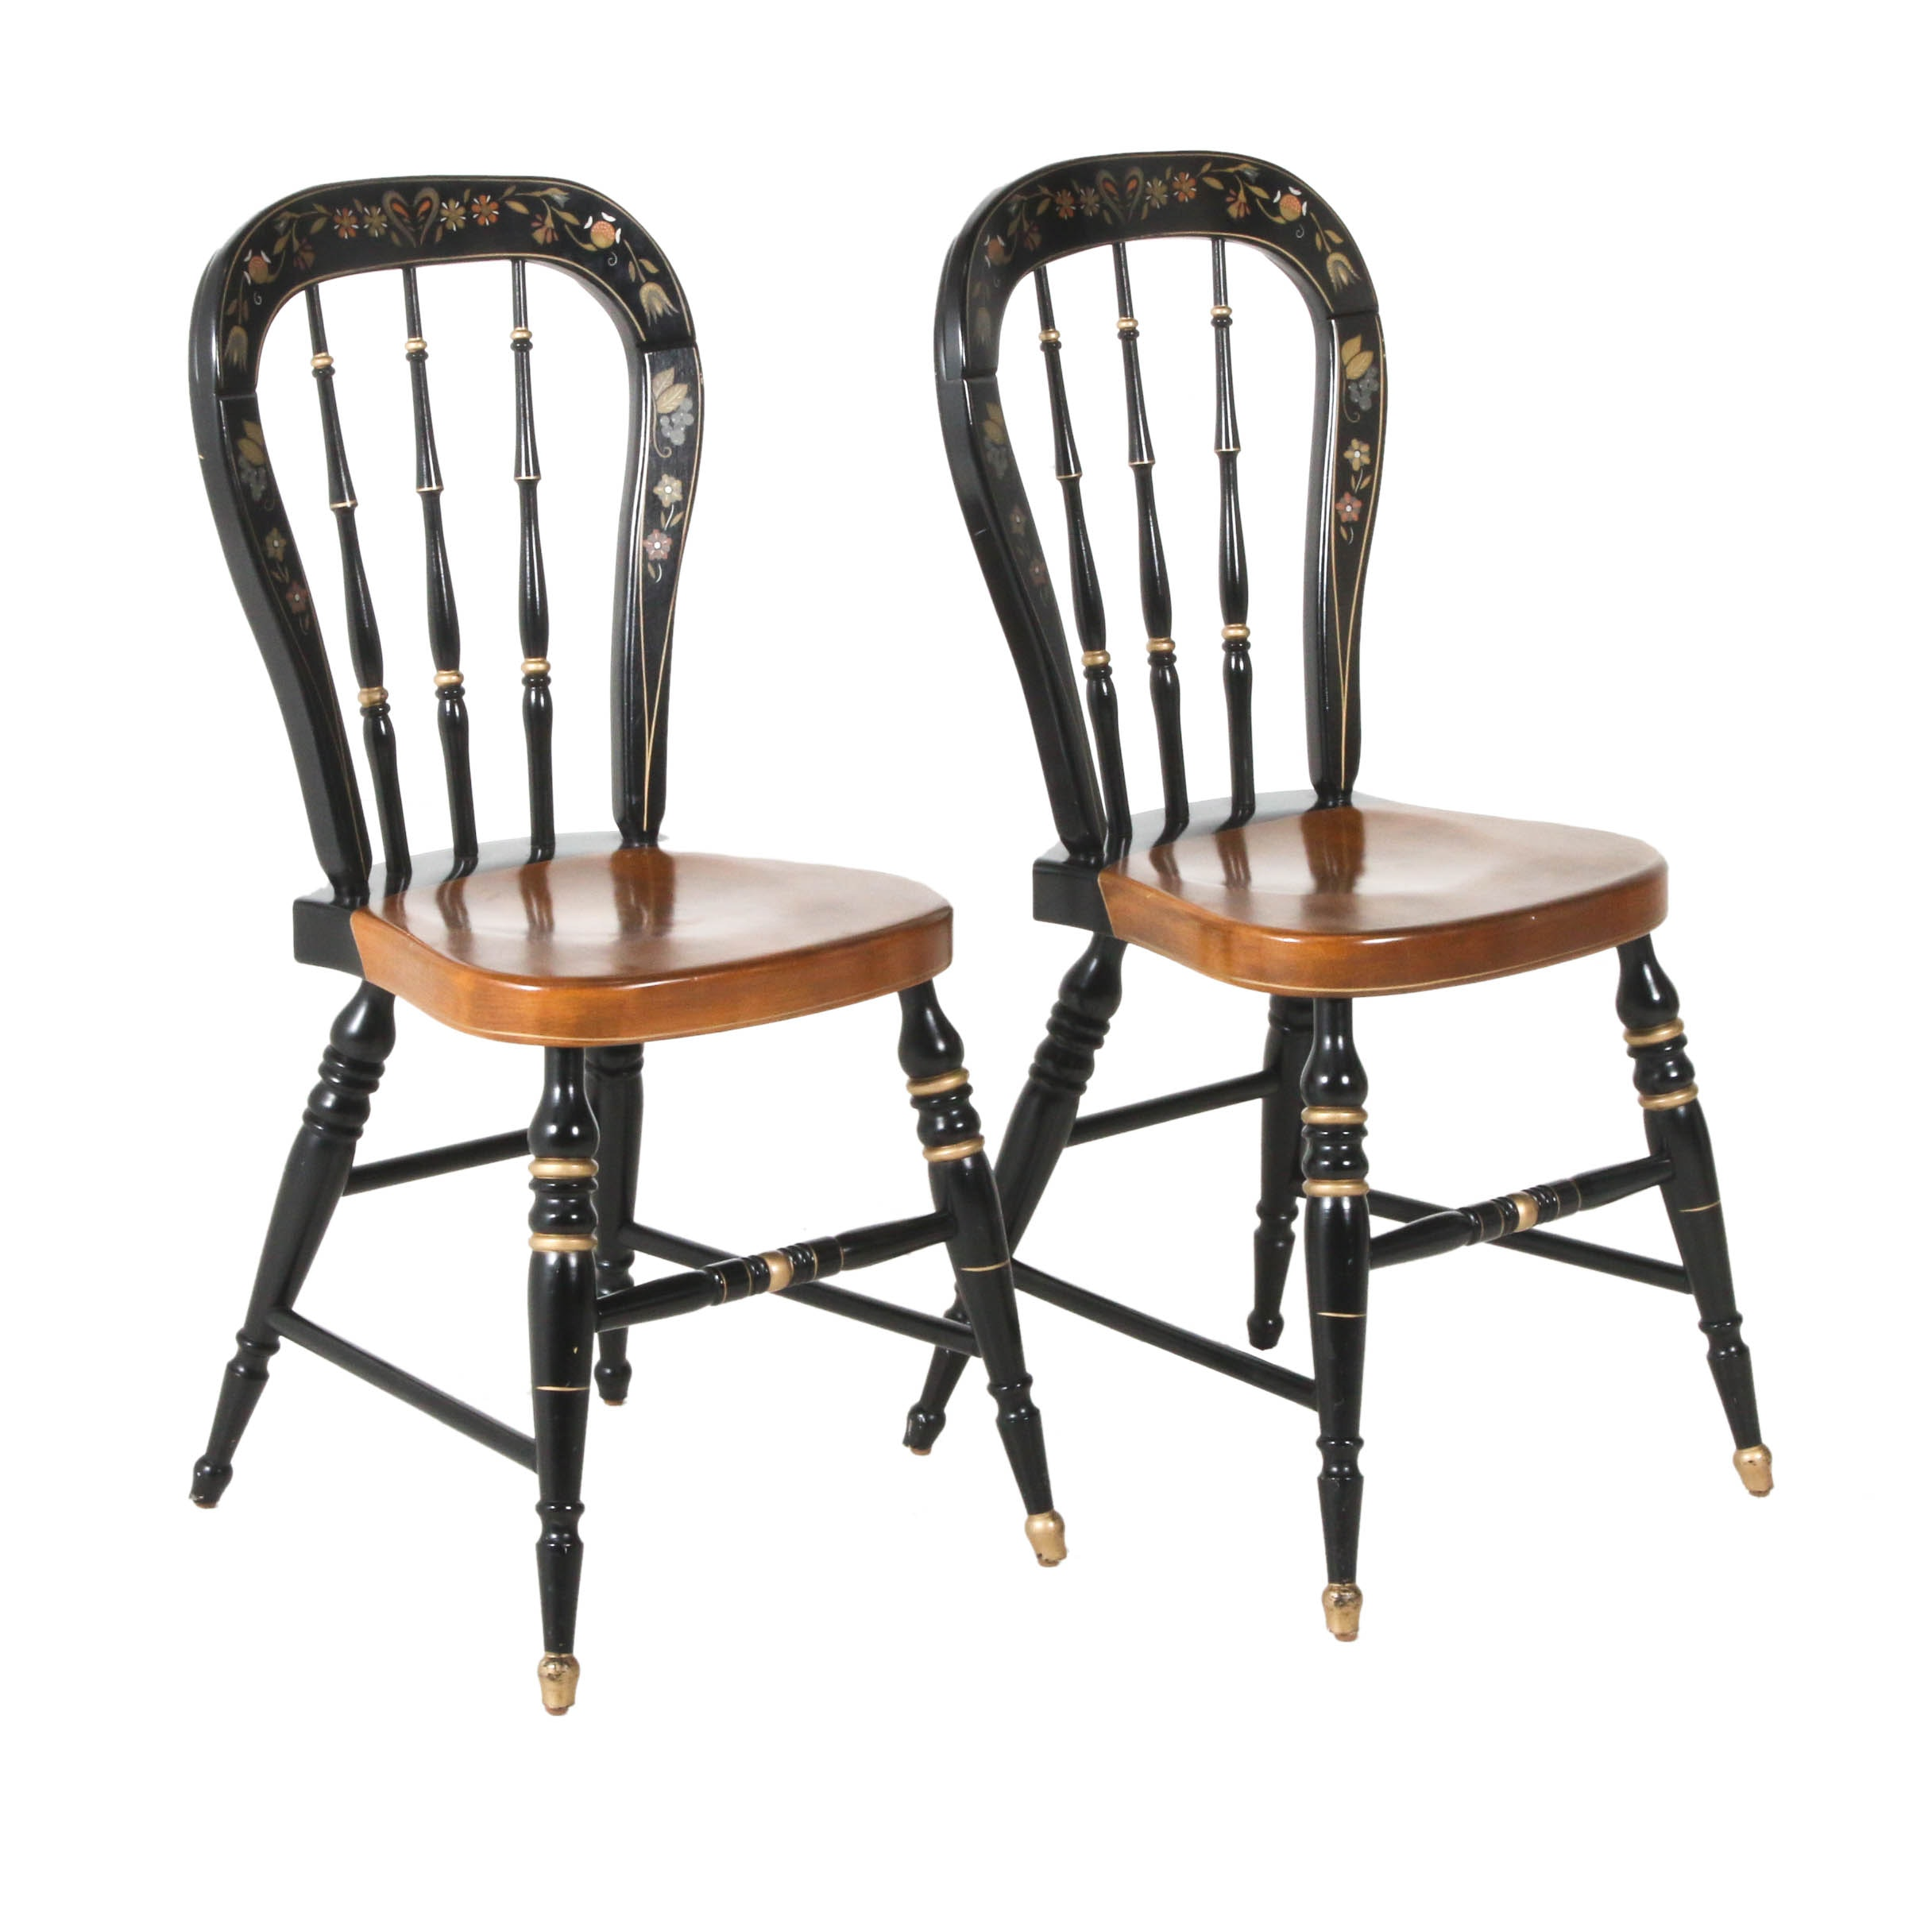 Ethan Allen Stenciled Hitchcock Chairs